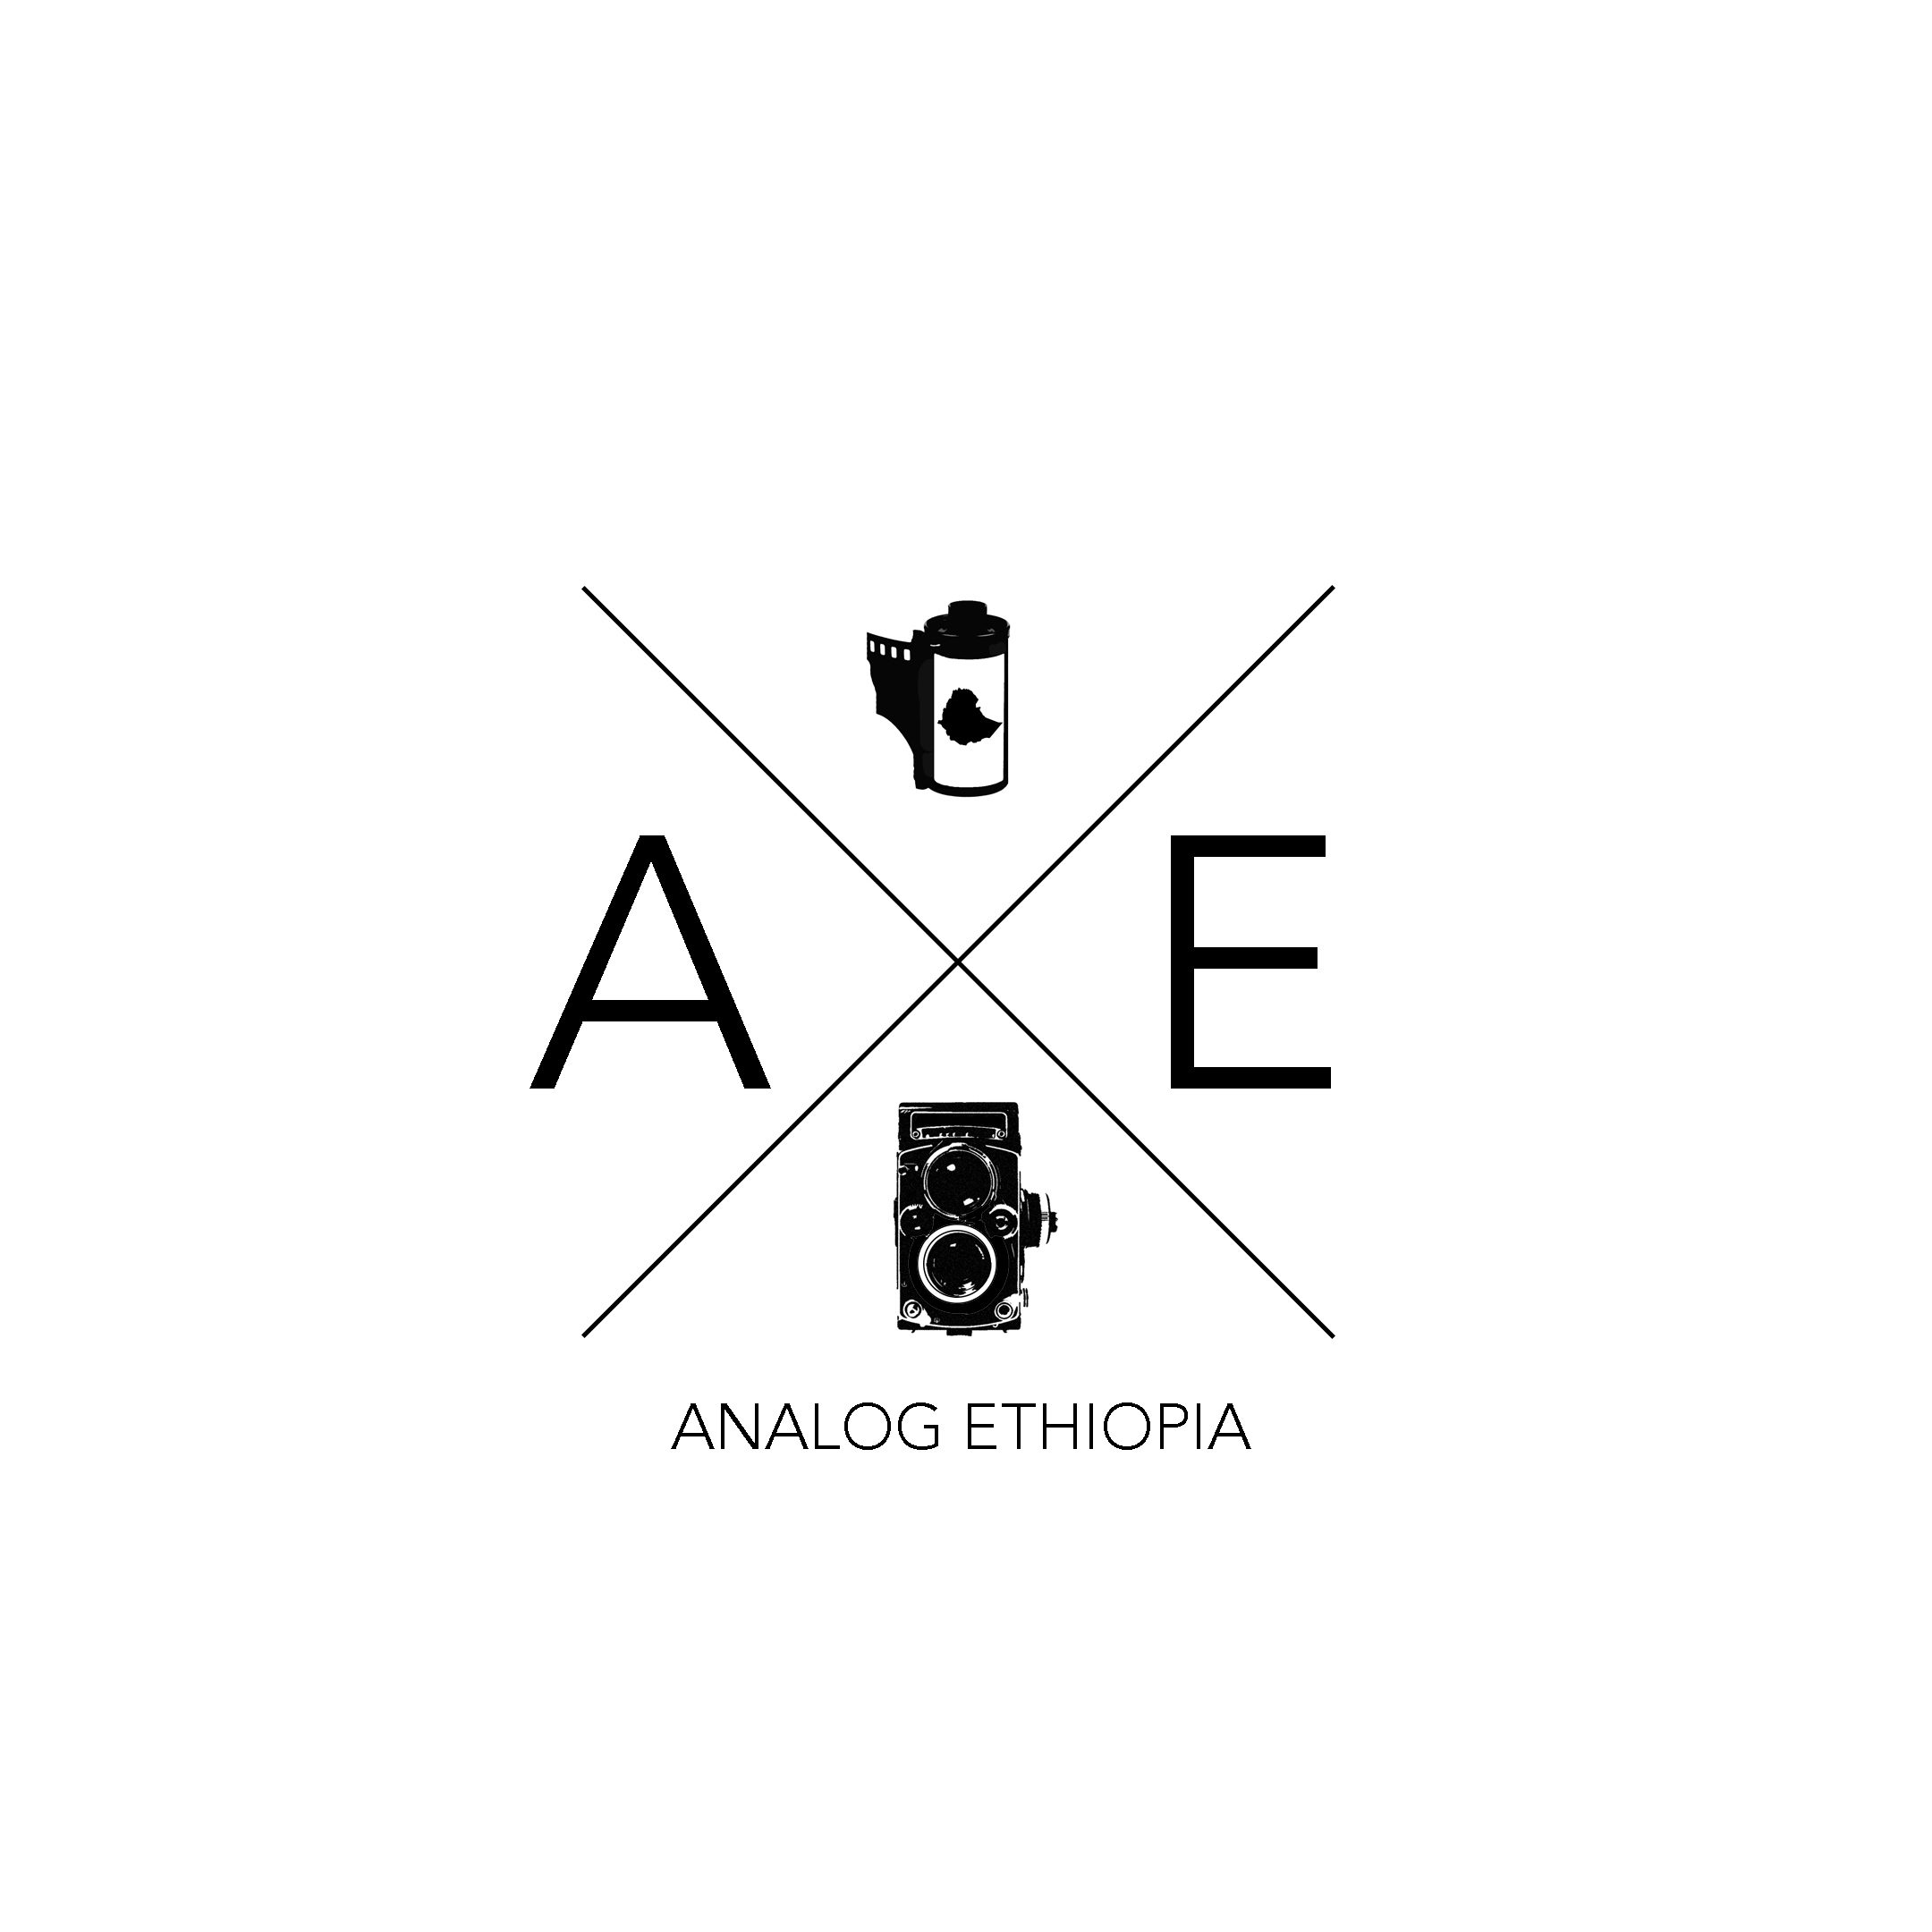 Analogue Ethiopia logo